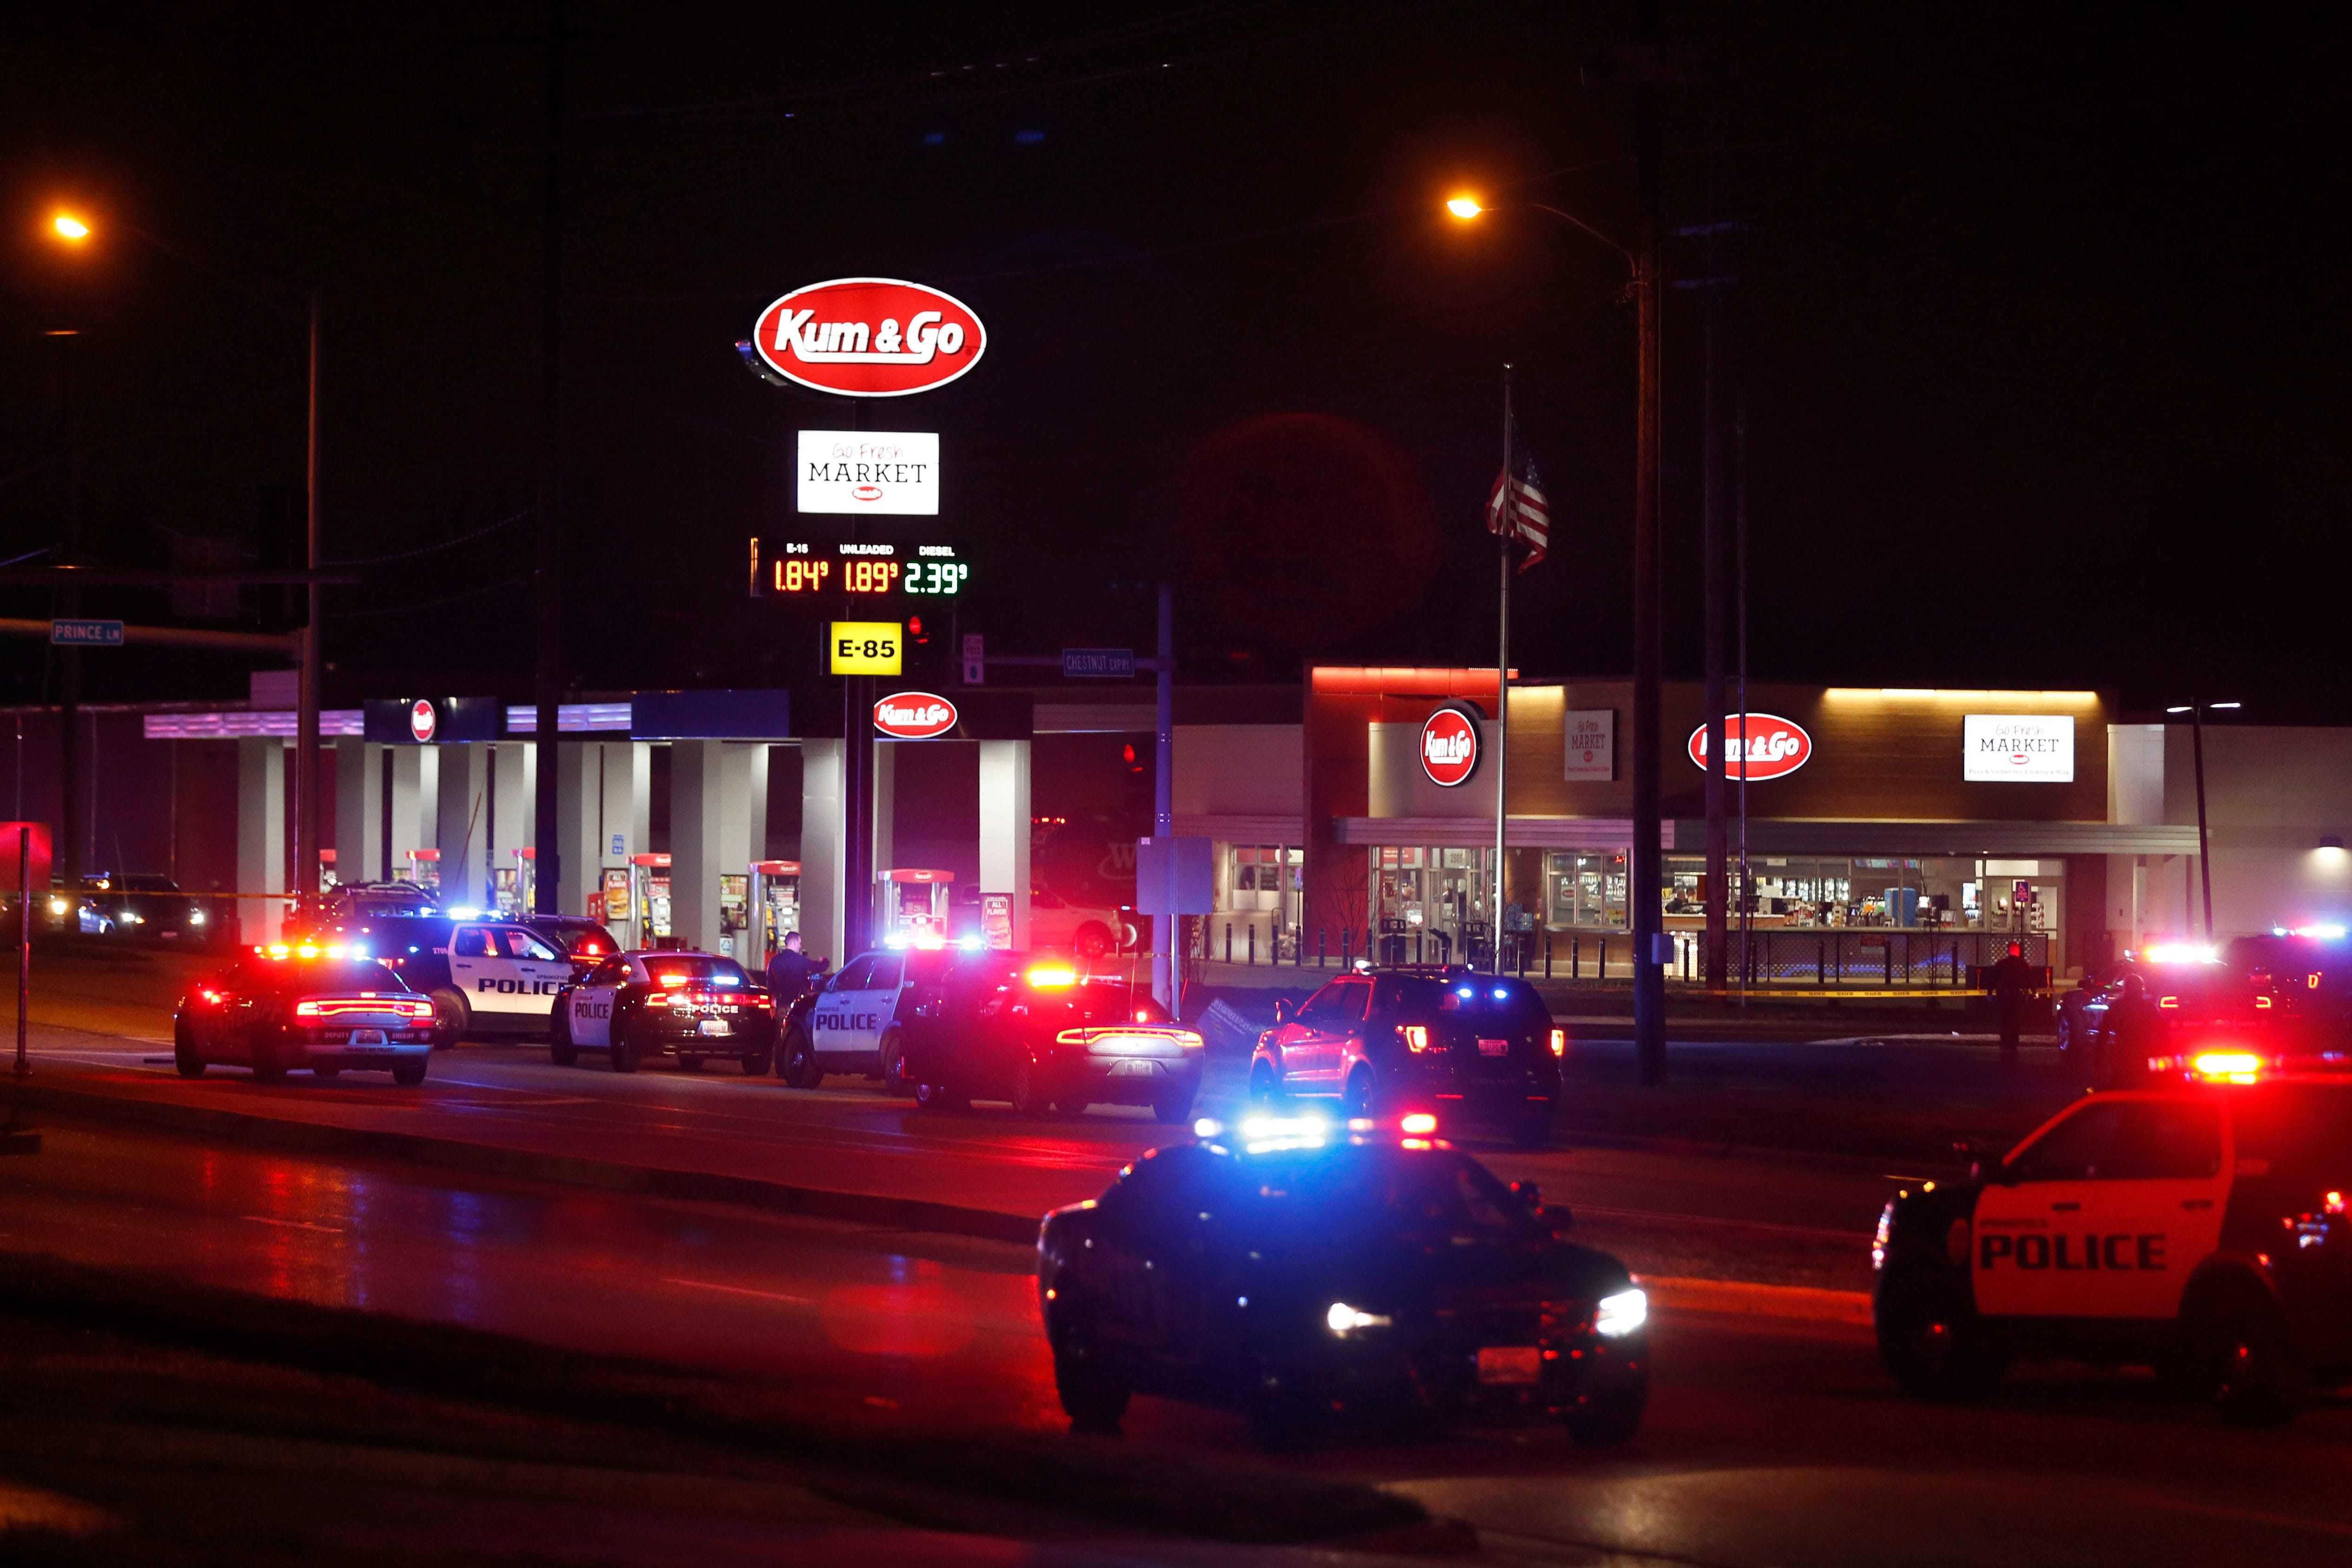 Search warrant sheds new light on motive in Springfield Kum & Go shooting